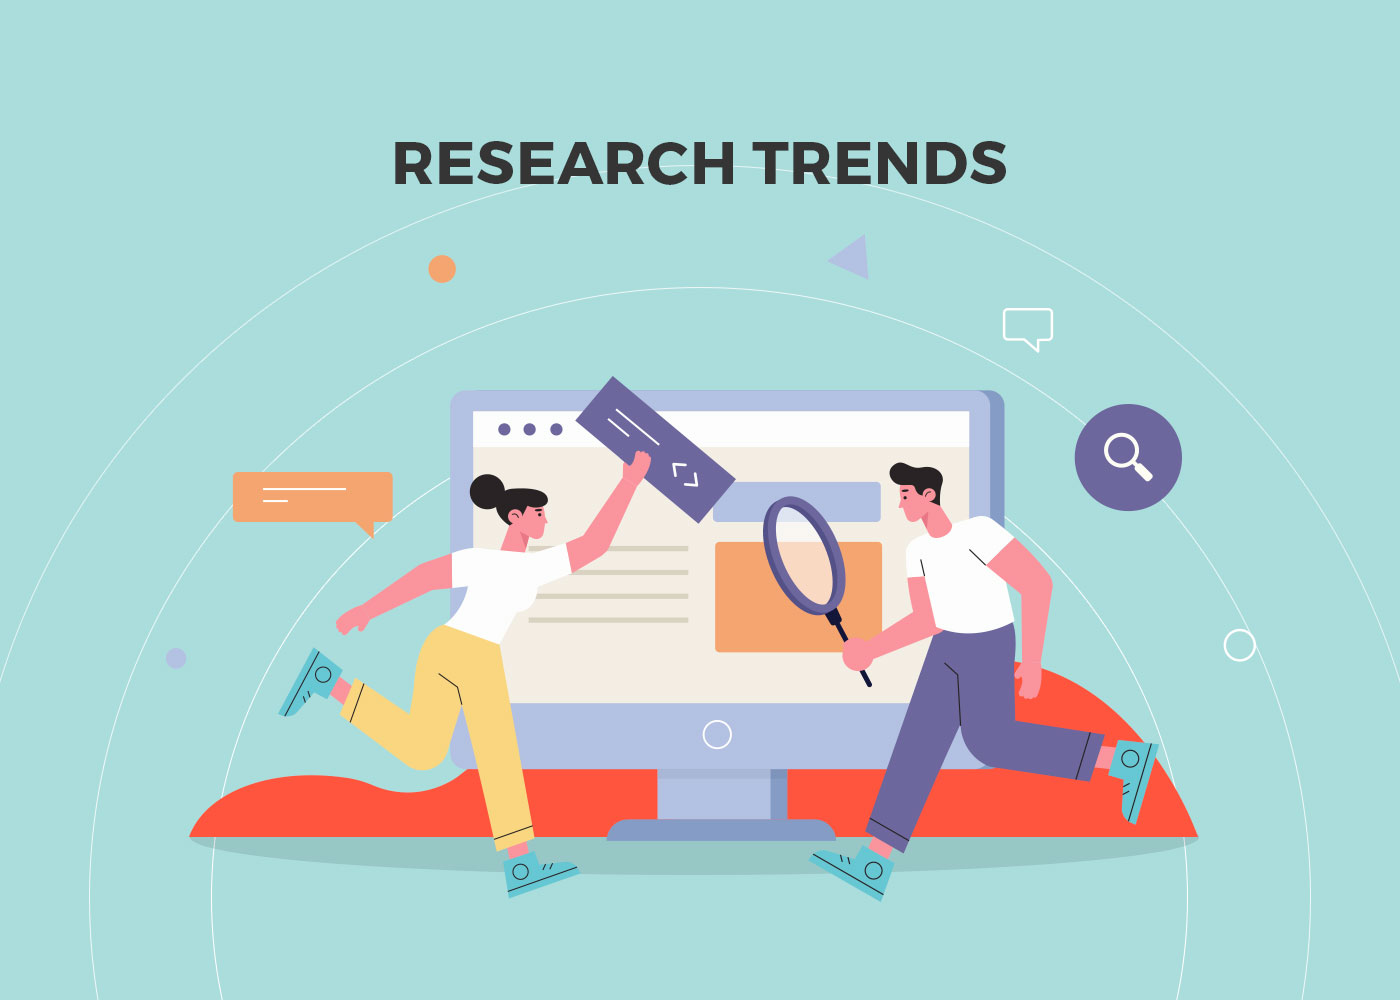 Research trends for food ordering app development